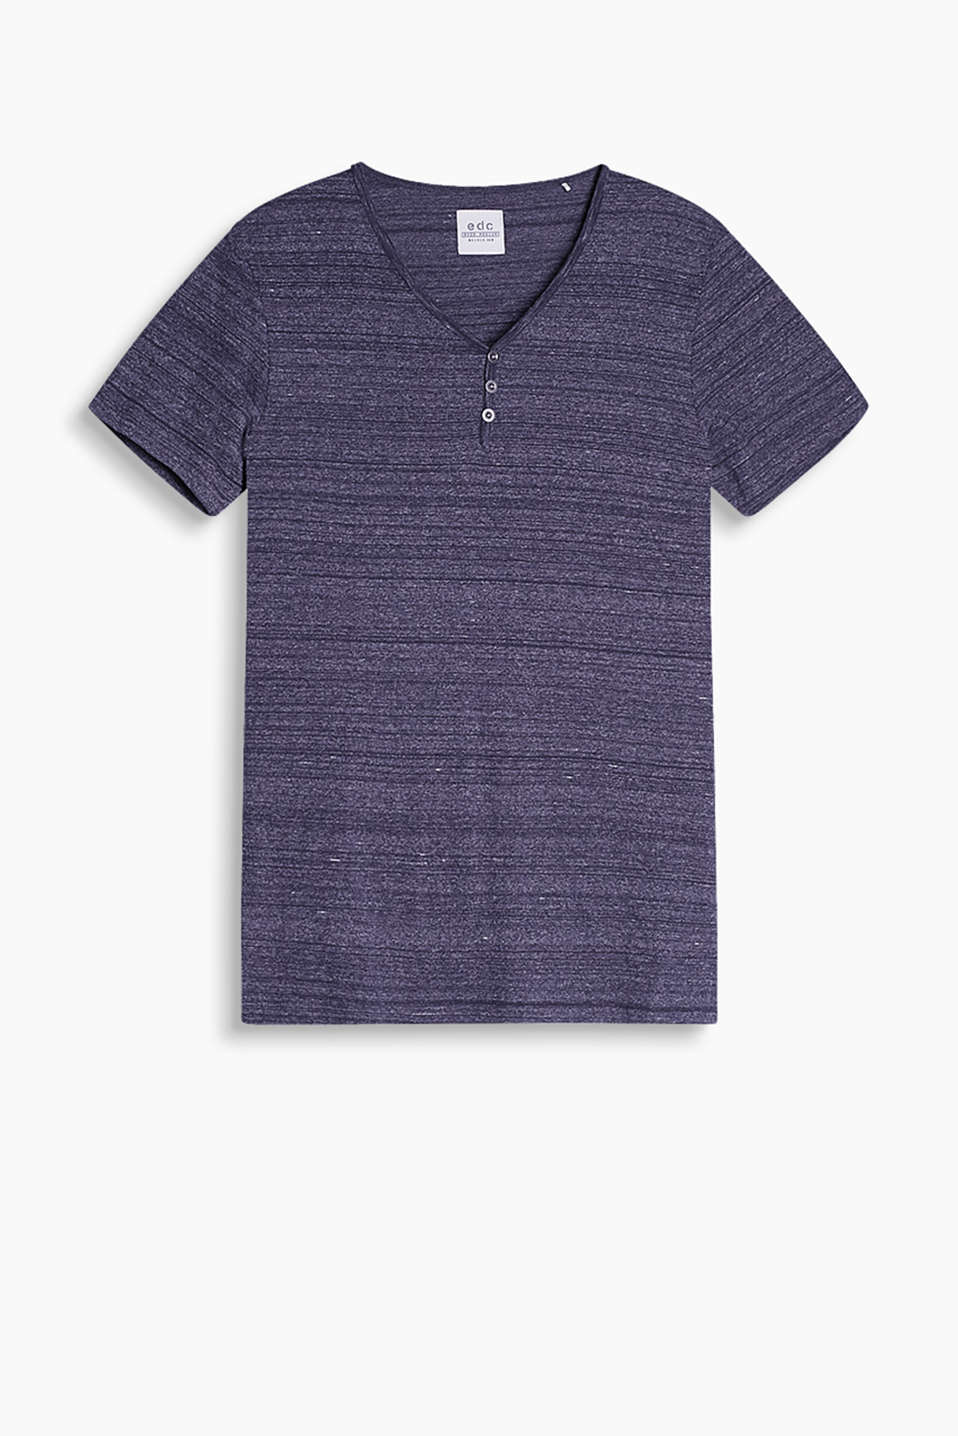 Henley-style T-shirt made of soft blended cotton